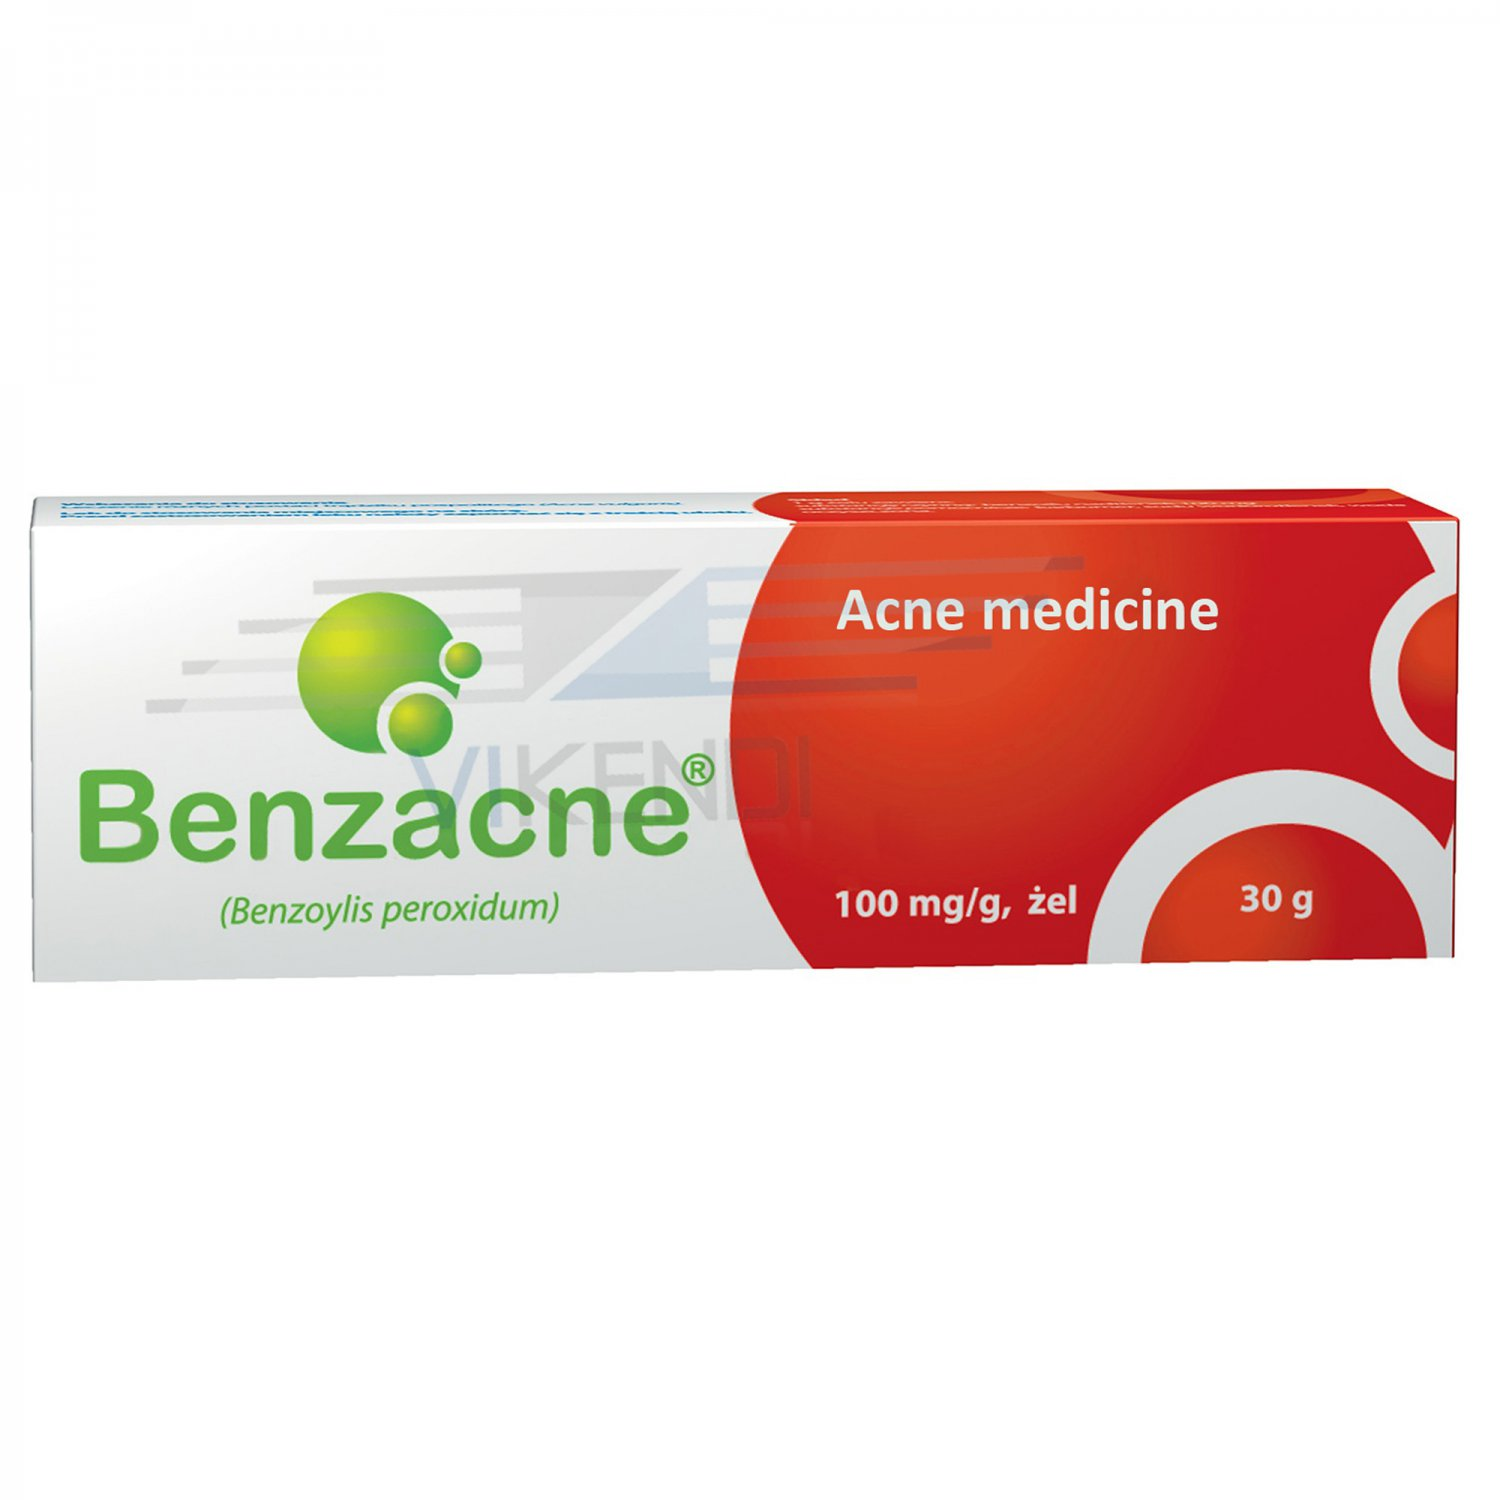 Benzacne Benzoyl Peroxide 10% Skin Acne Blackheads Treatment Gel